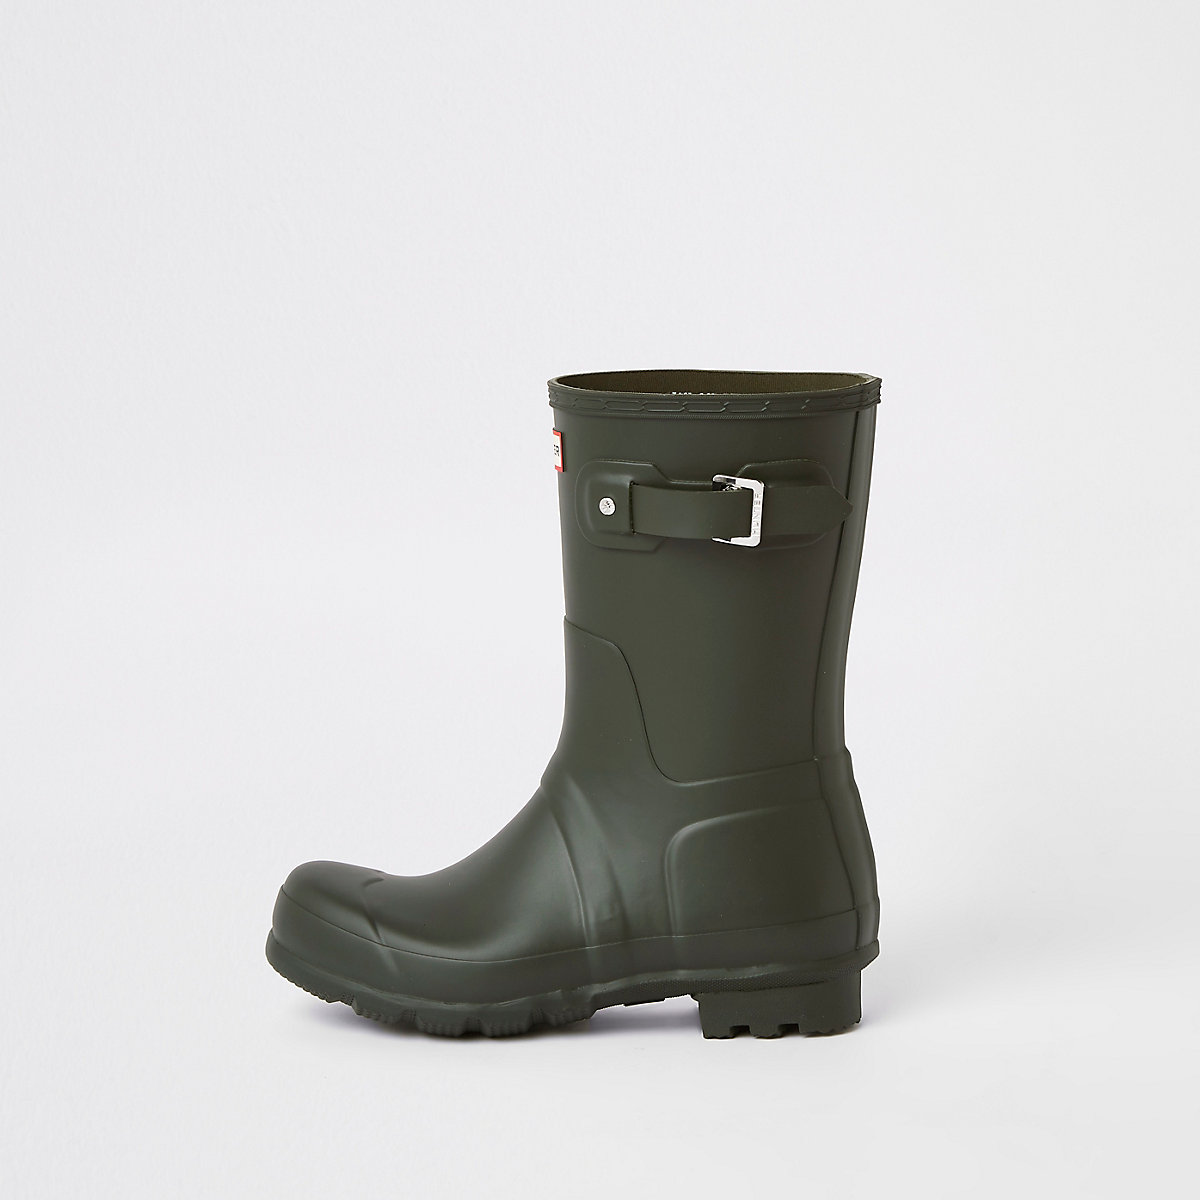 Hunter Original green short rubber boots